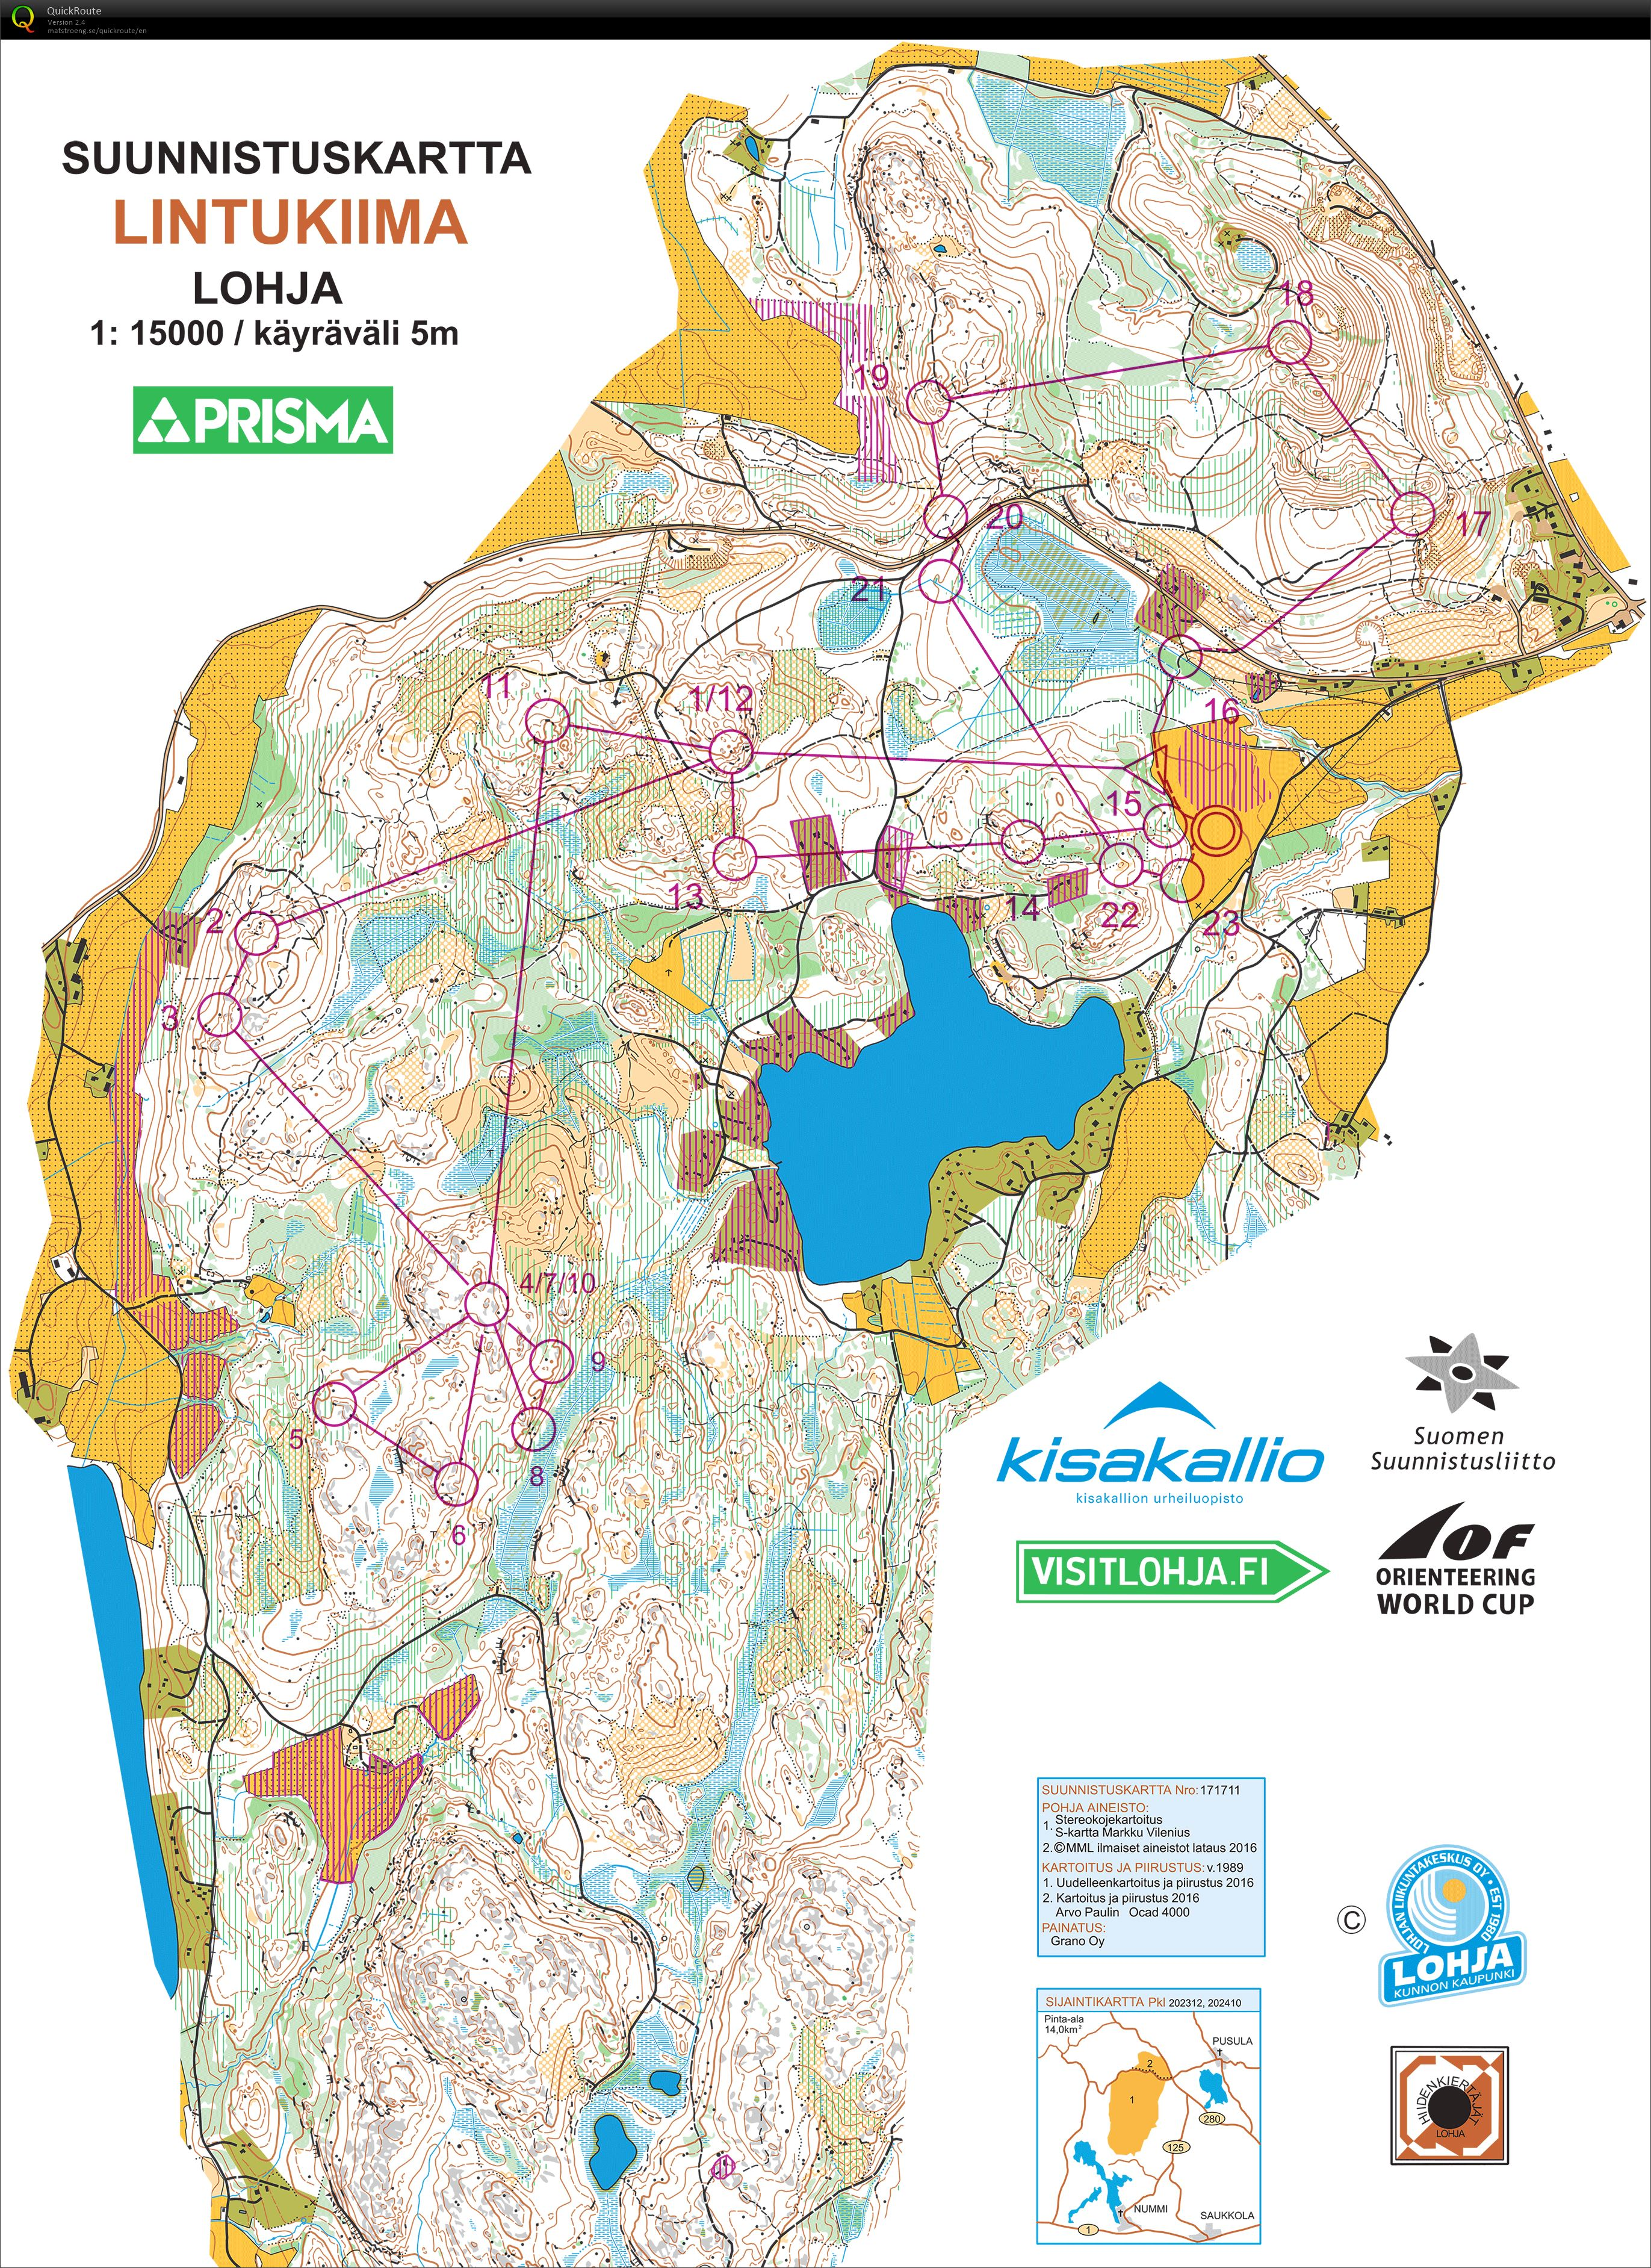 World cup long chasing start May 28th 2017 Orienteering Map from